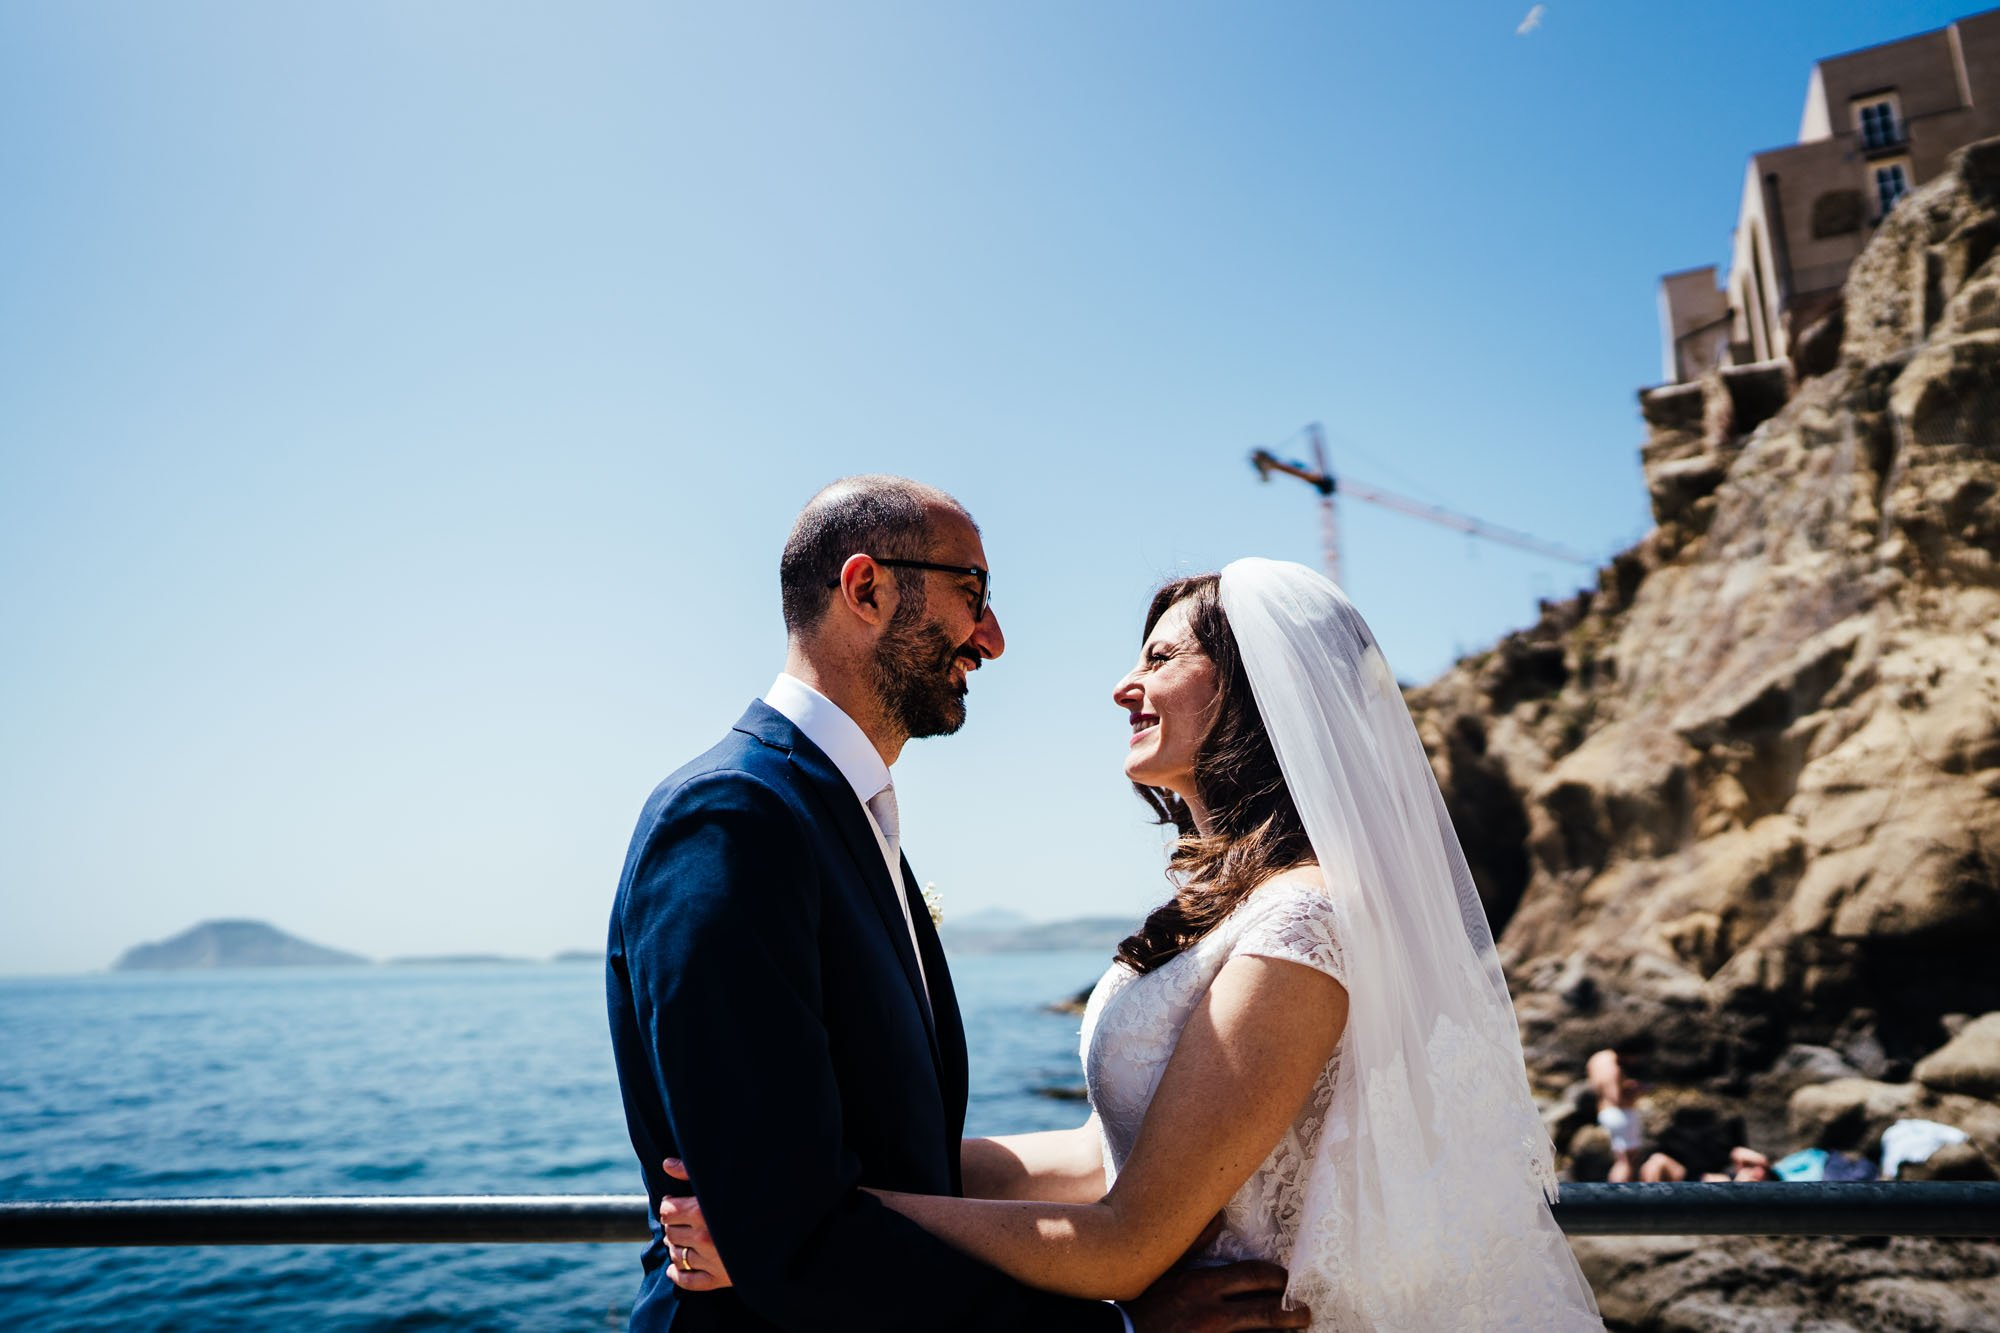 wedding-in-italy-mary-mimmo-38